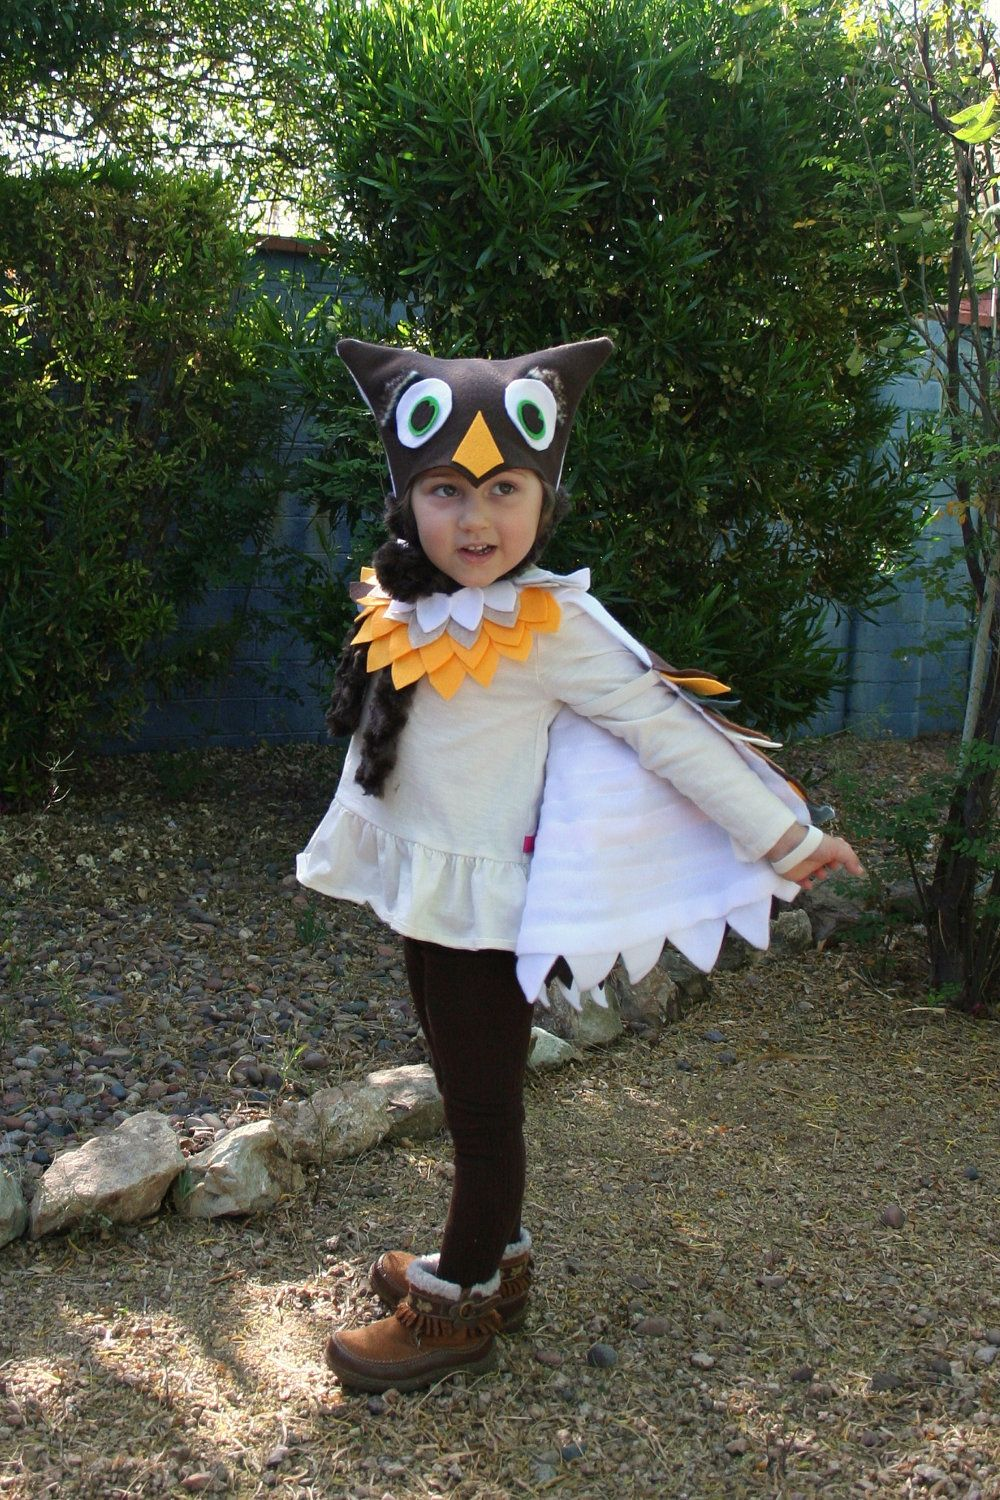 Owl Costume- Snowy Owl- Imagination Play- Dress Up- Hedwig- Harry Potter- Halloween | Halloween | Pinterest | Déguisements Costume halloween enfant et ...  sc 1 st  Pinterest & Owl Costume- Snowy Owl- Imagination Play- Dress Up- Hedwig- Harry ...